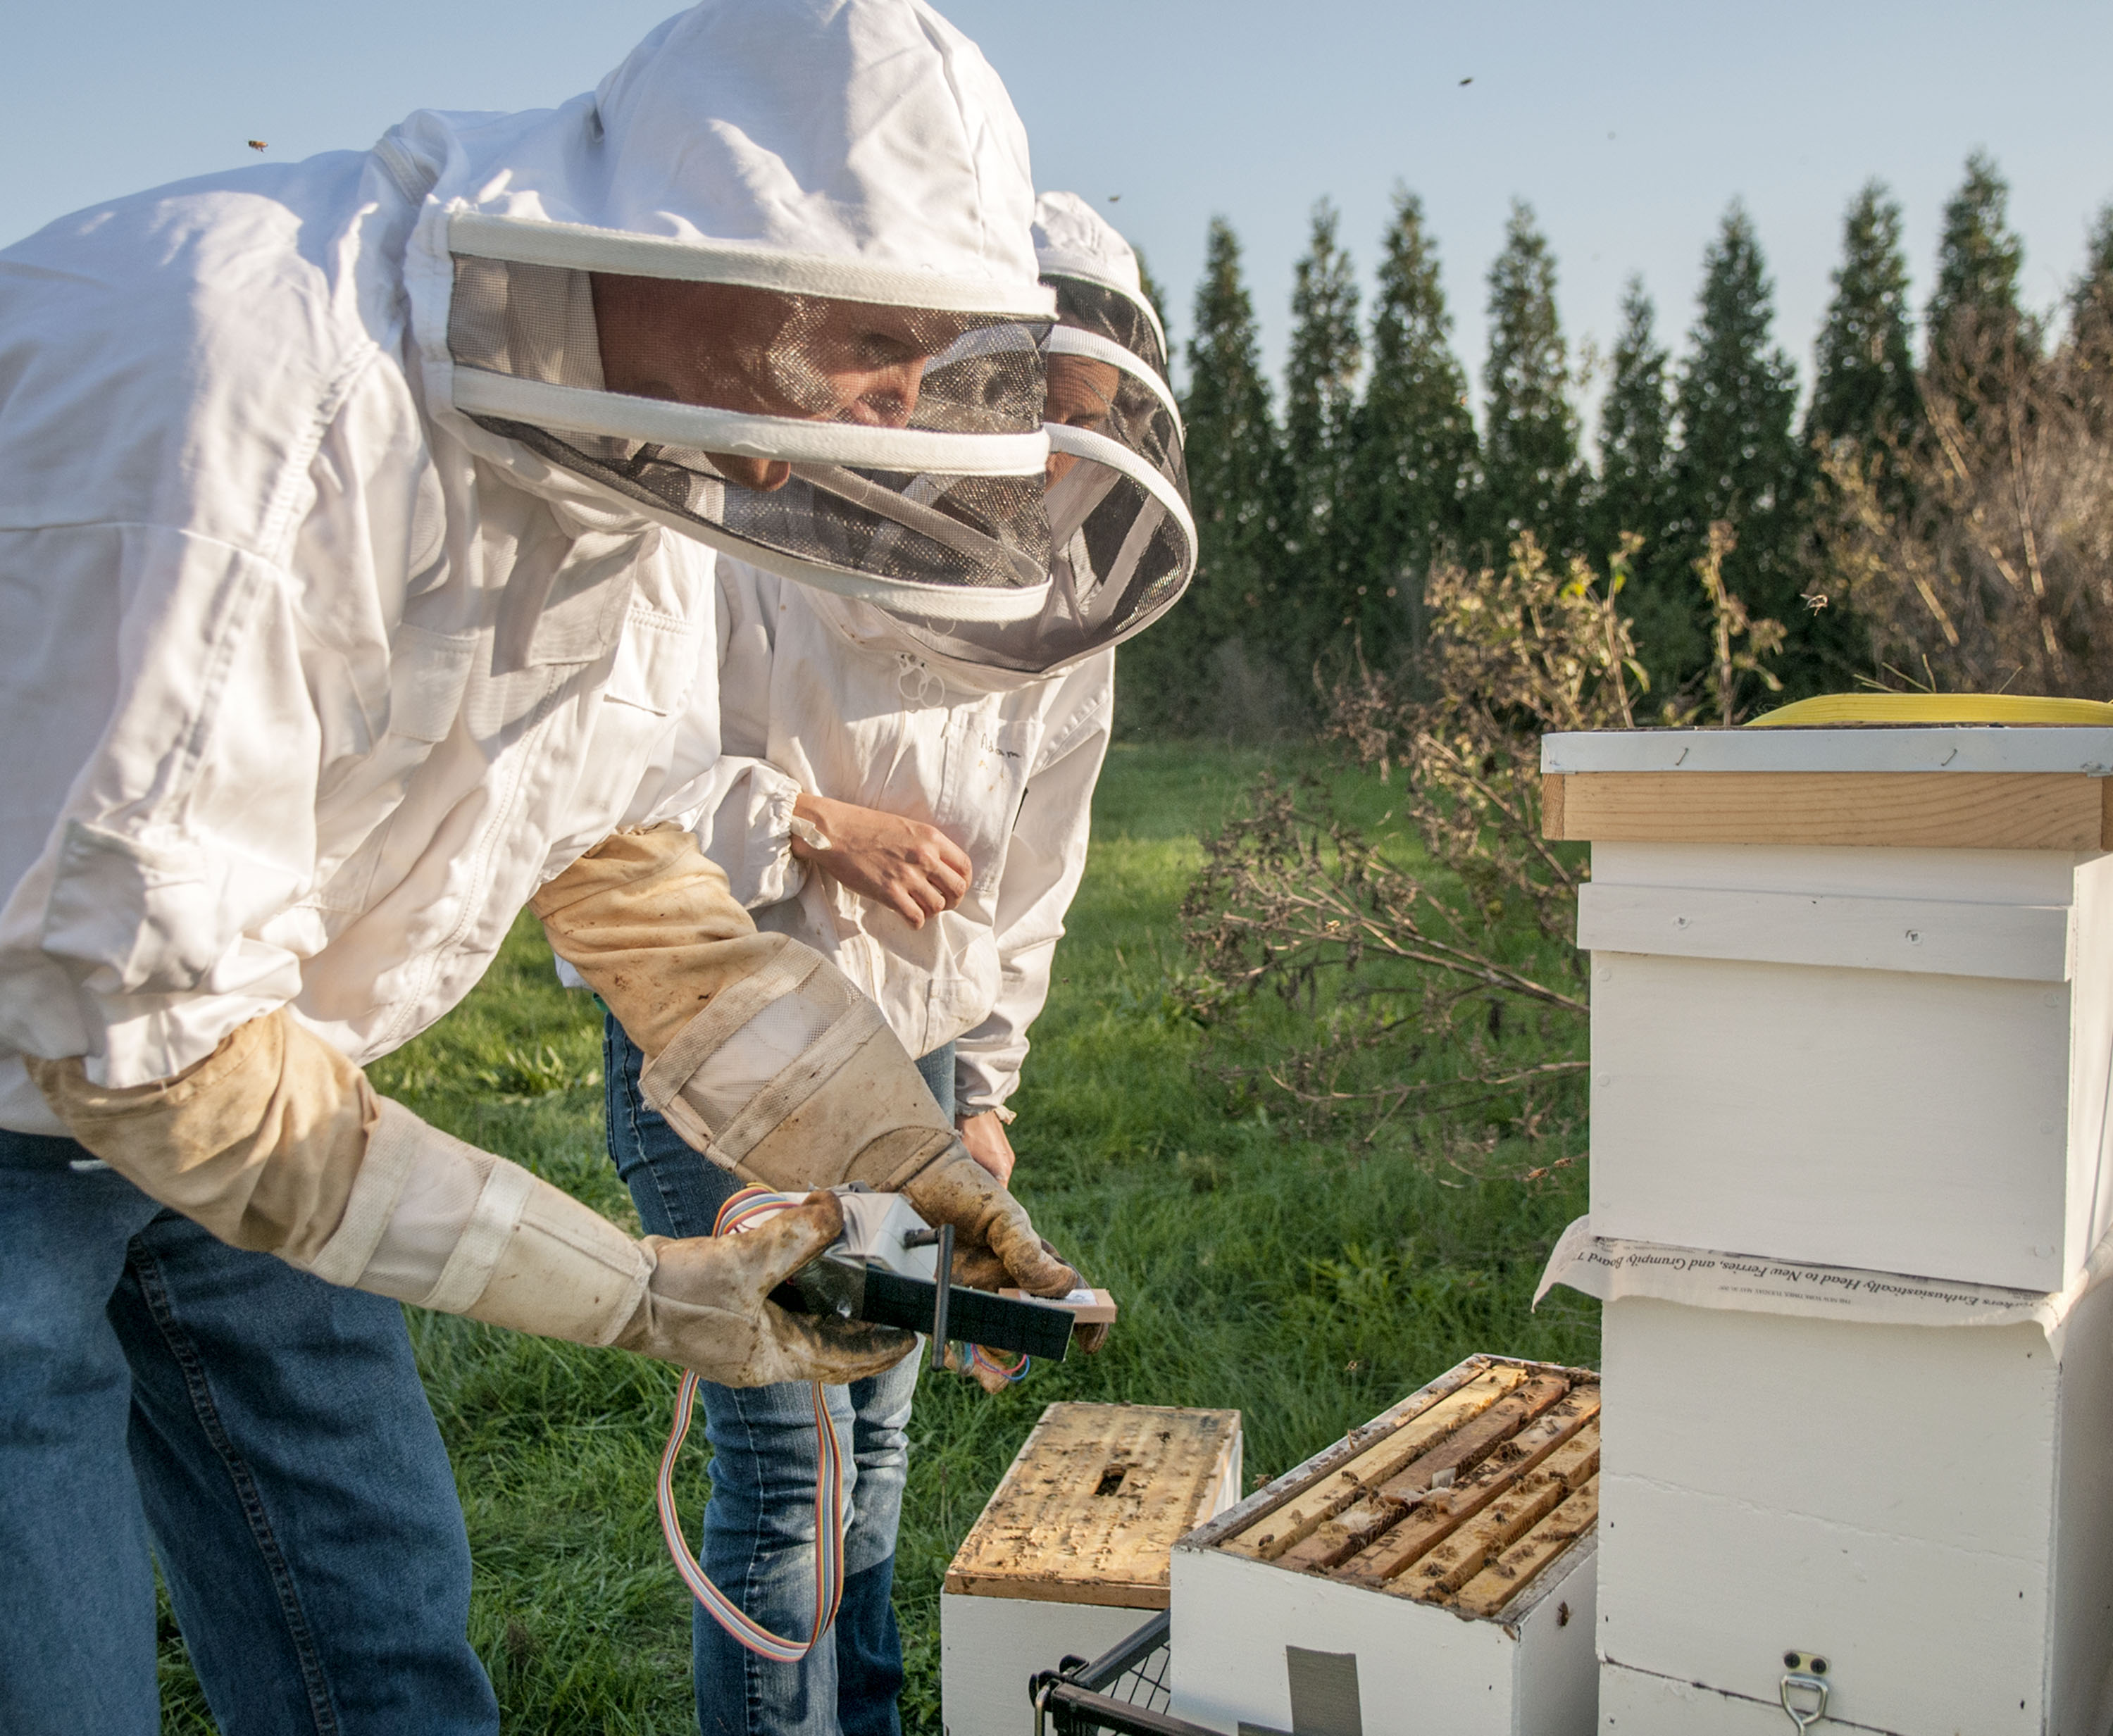 Schmitz (left) and Sankey slot the first sensor in an outdoor beehive. The second sensor inside the lab's Waggle World allows Sankey to compare the bees' overwintering survival in hives both indoors and outdoors.